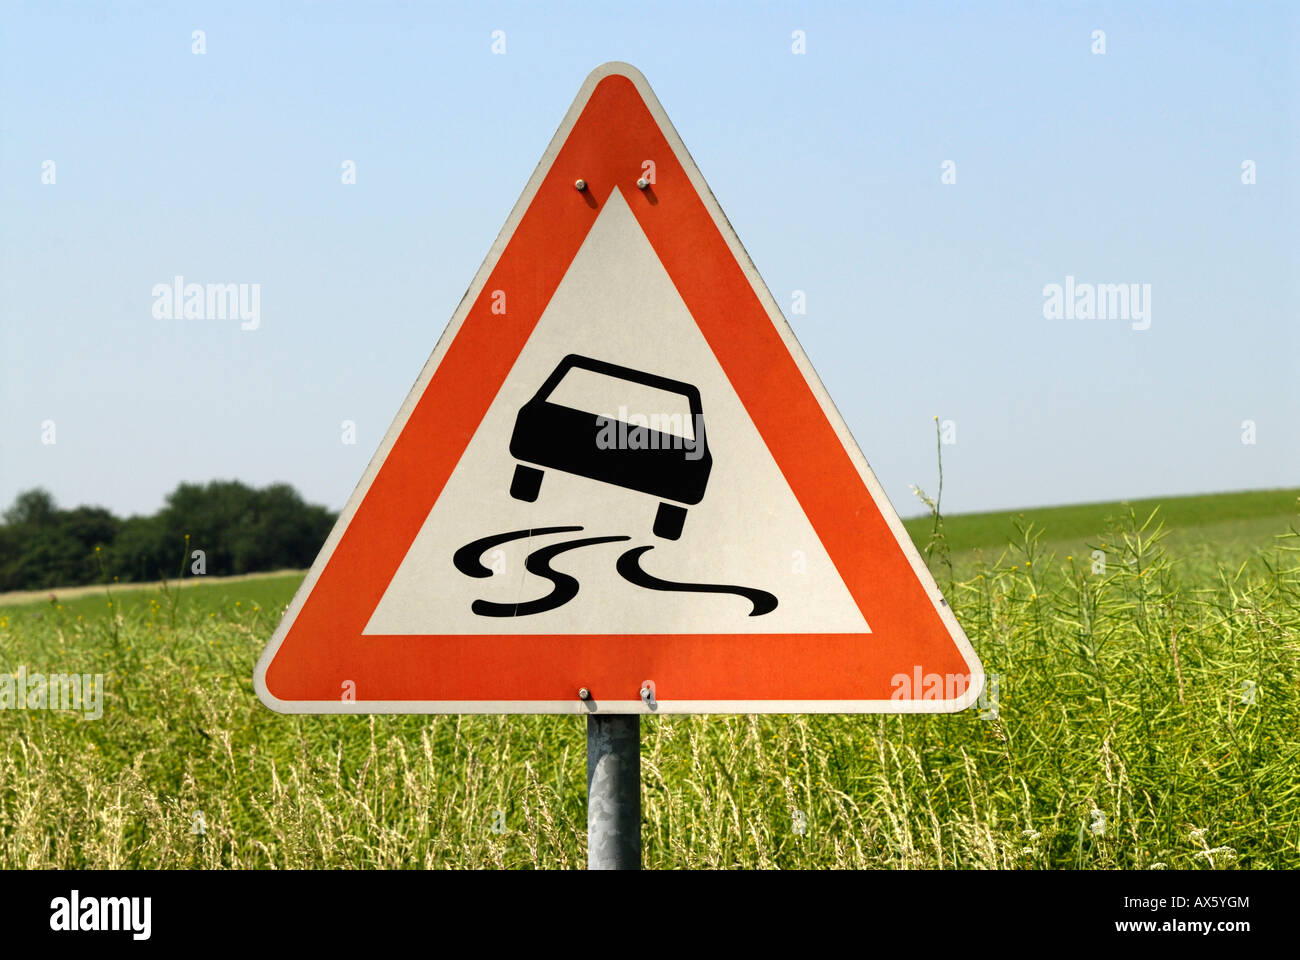 Traffic sign, slippery when wet - Stock Image